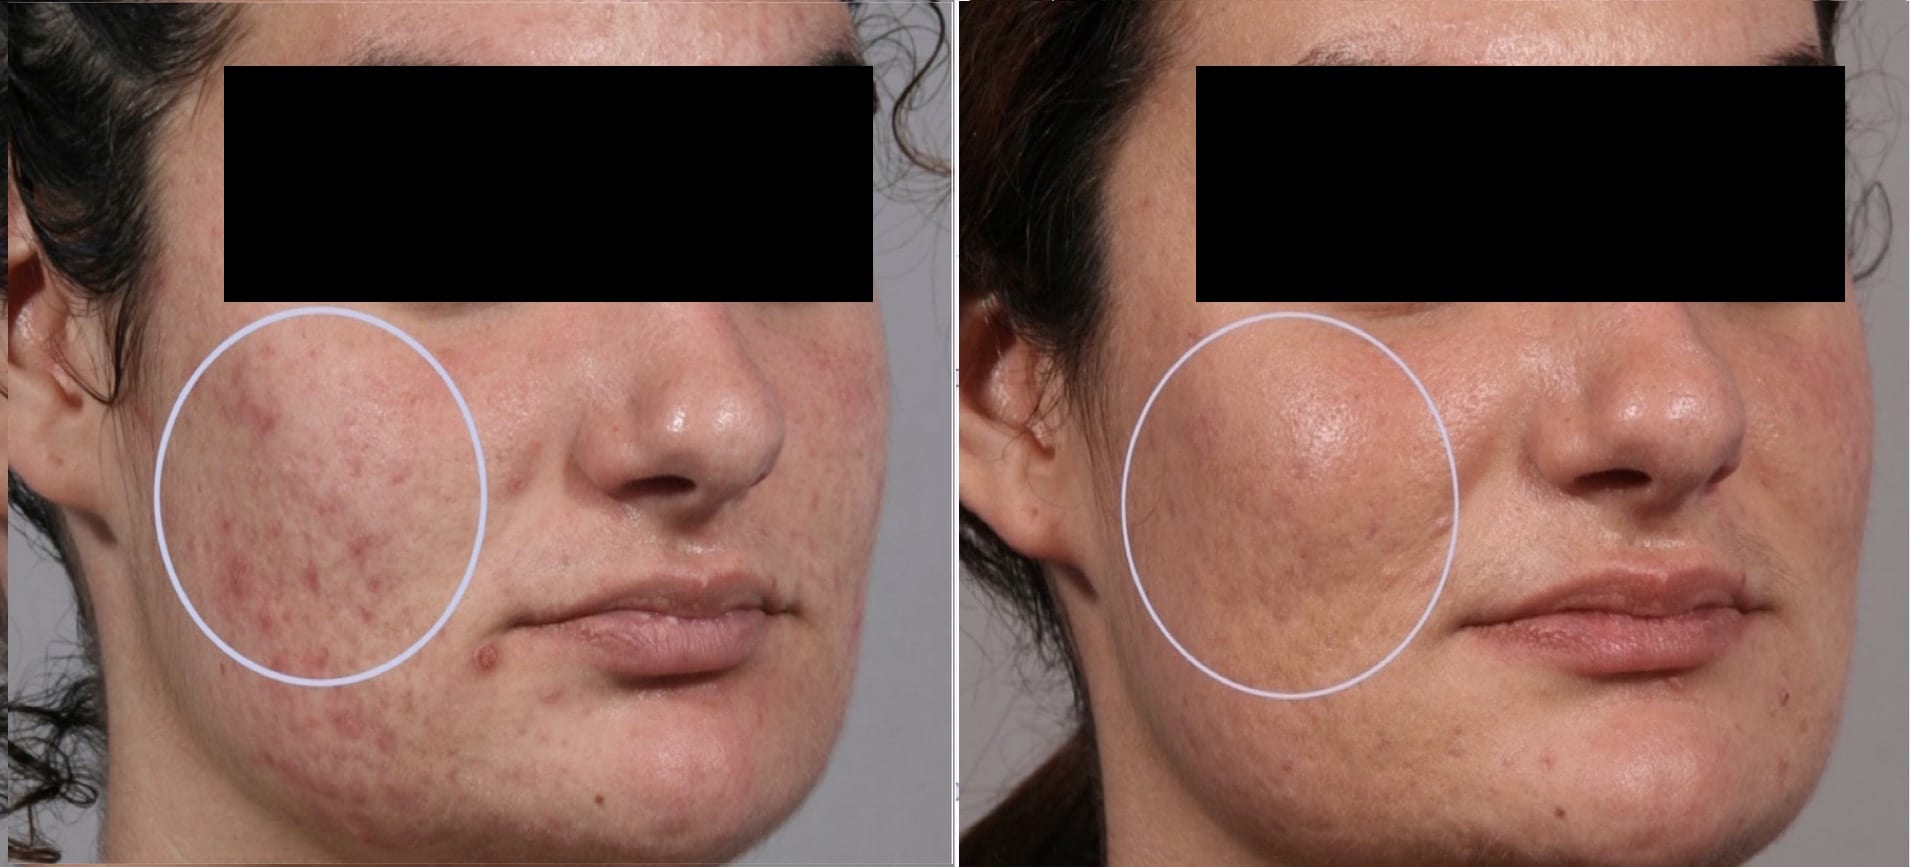 25 year old patient before treatment and 2 weeks after 3 Intensif RF Microneedle treatments for acne scars.